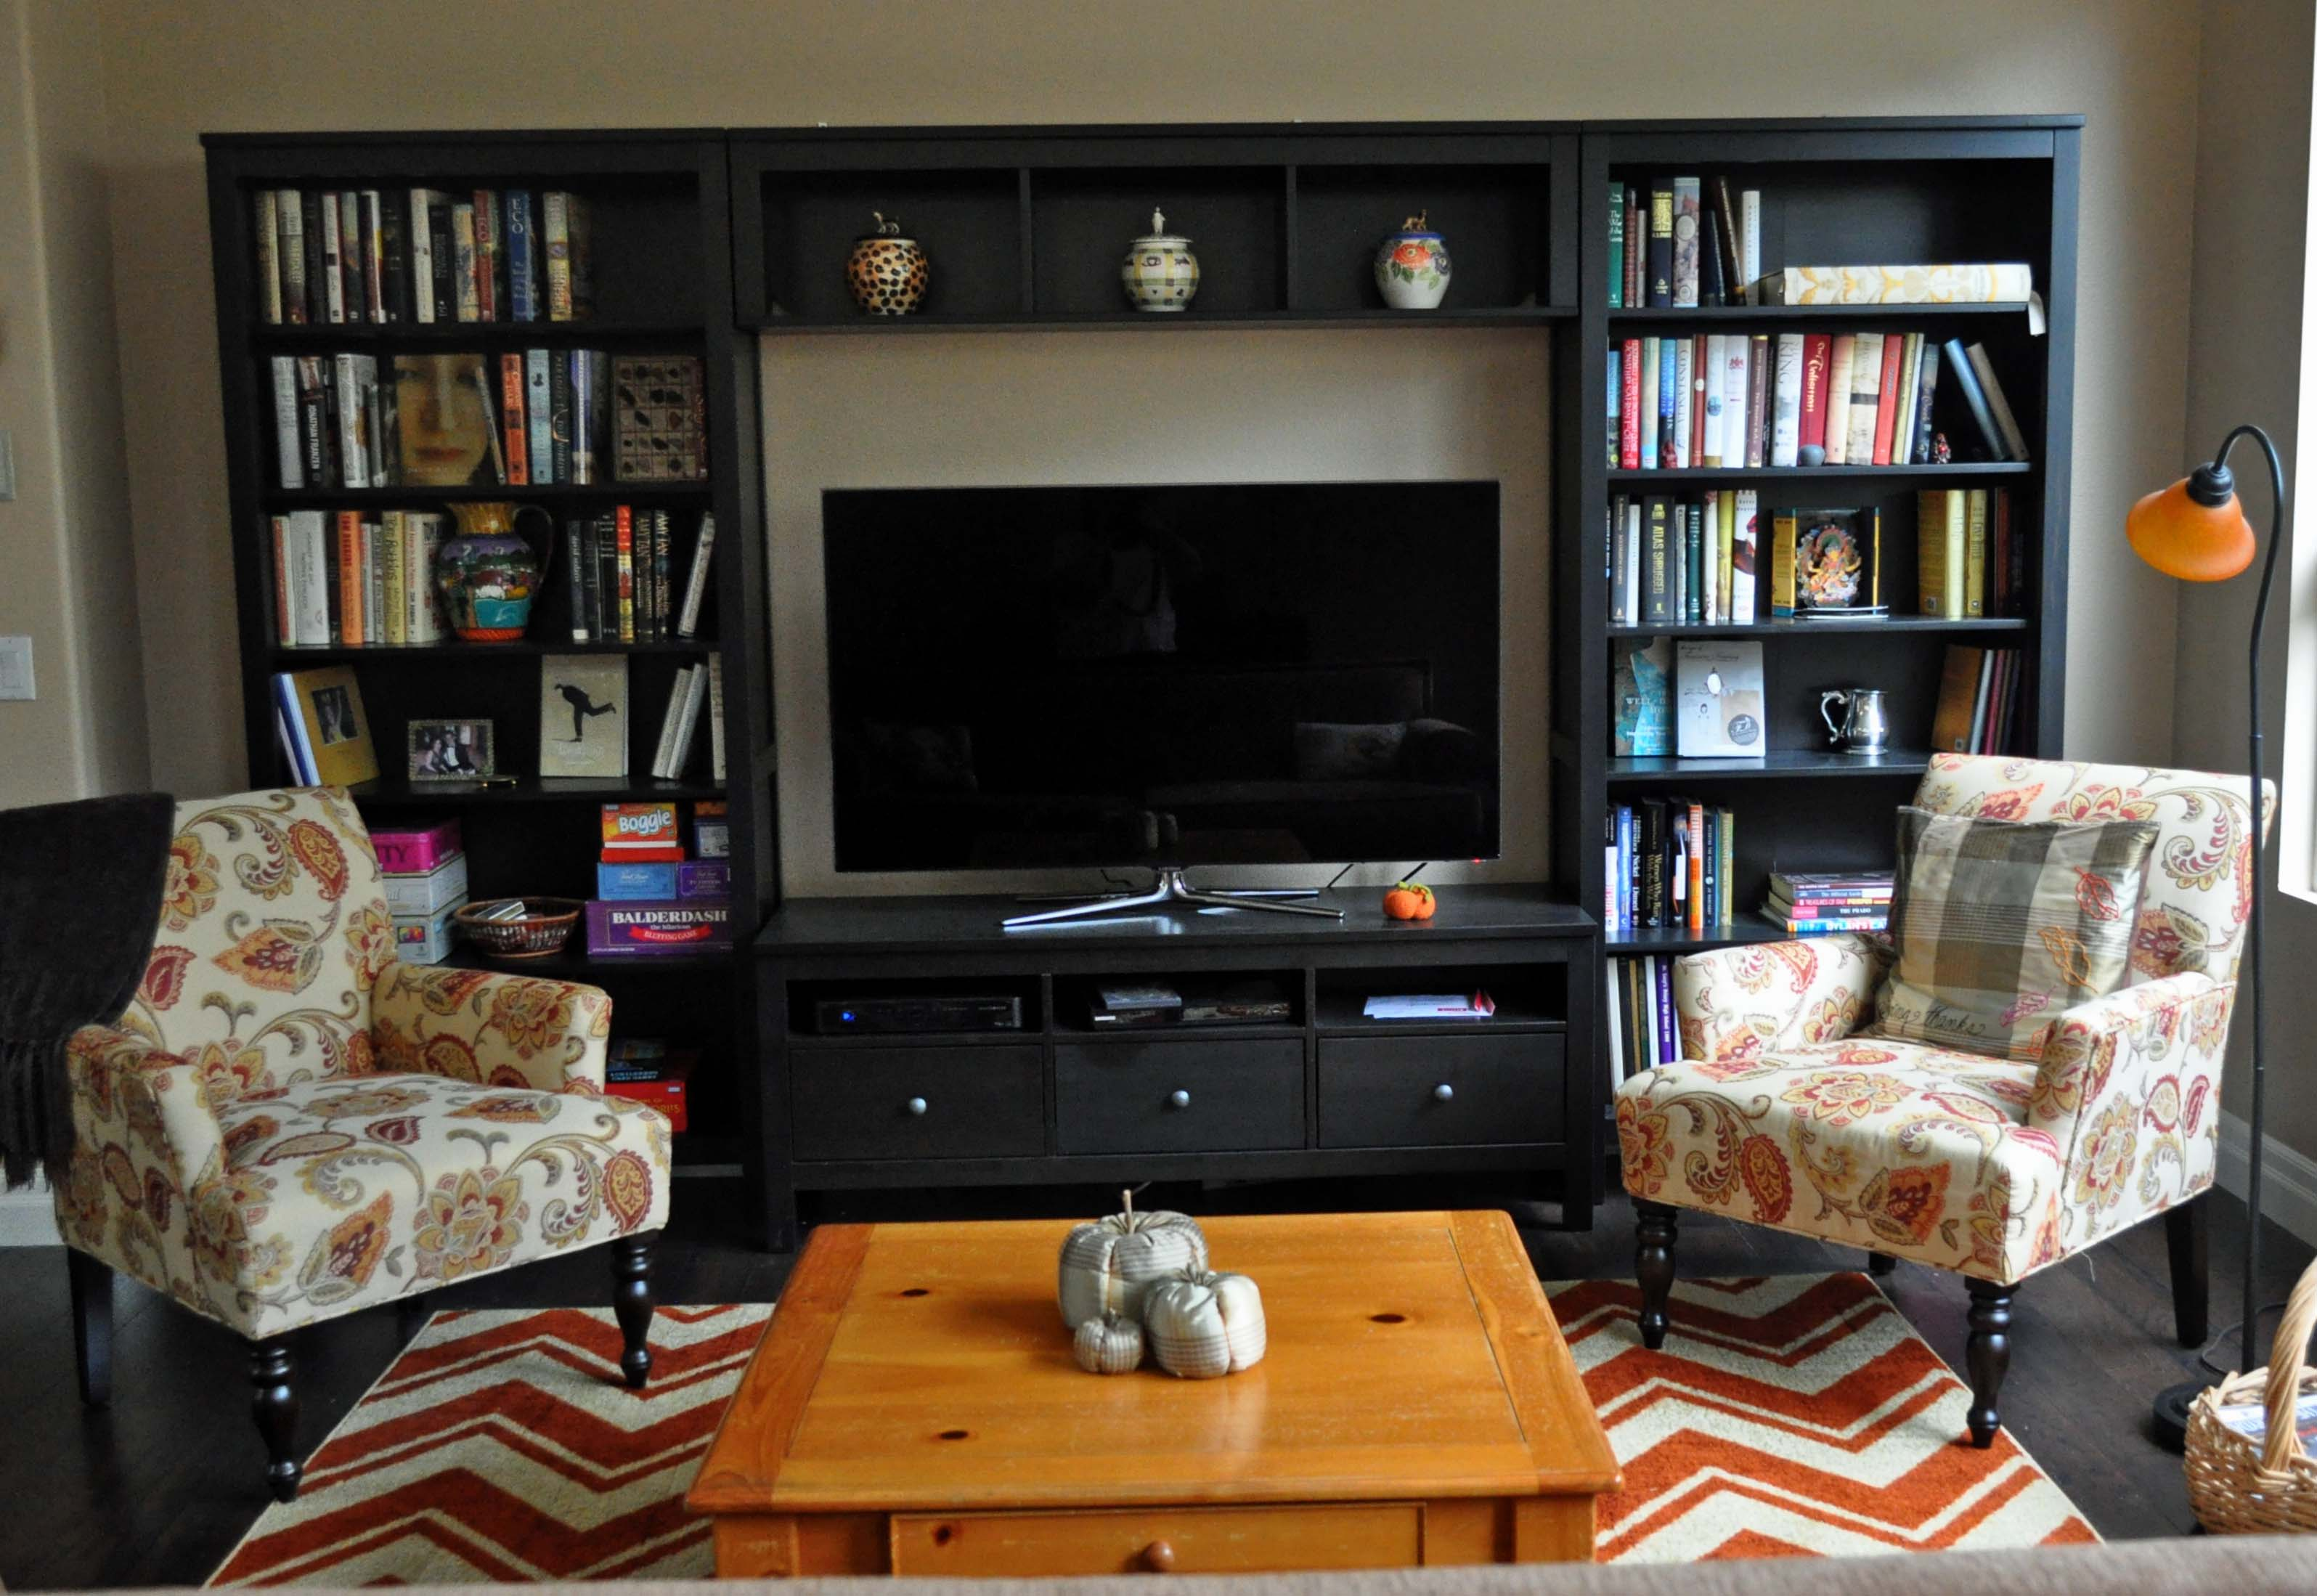 Living room remodel by laura bray designs